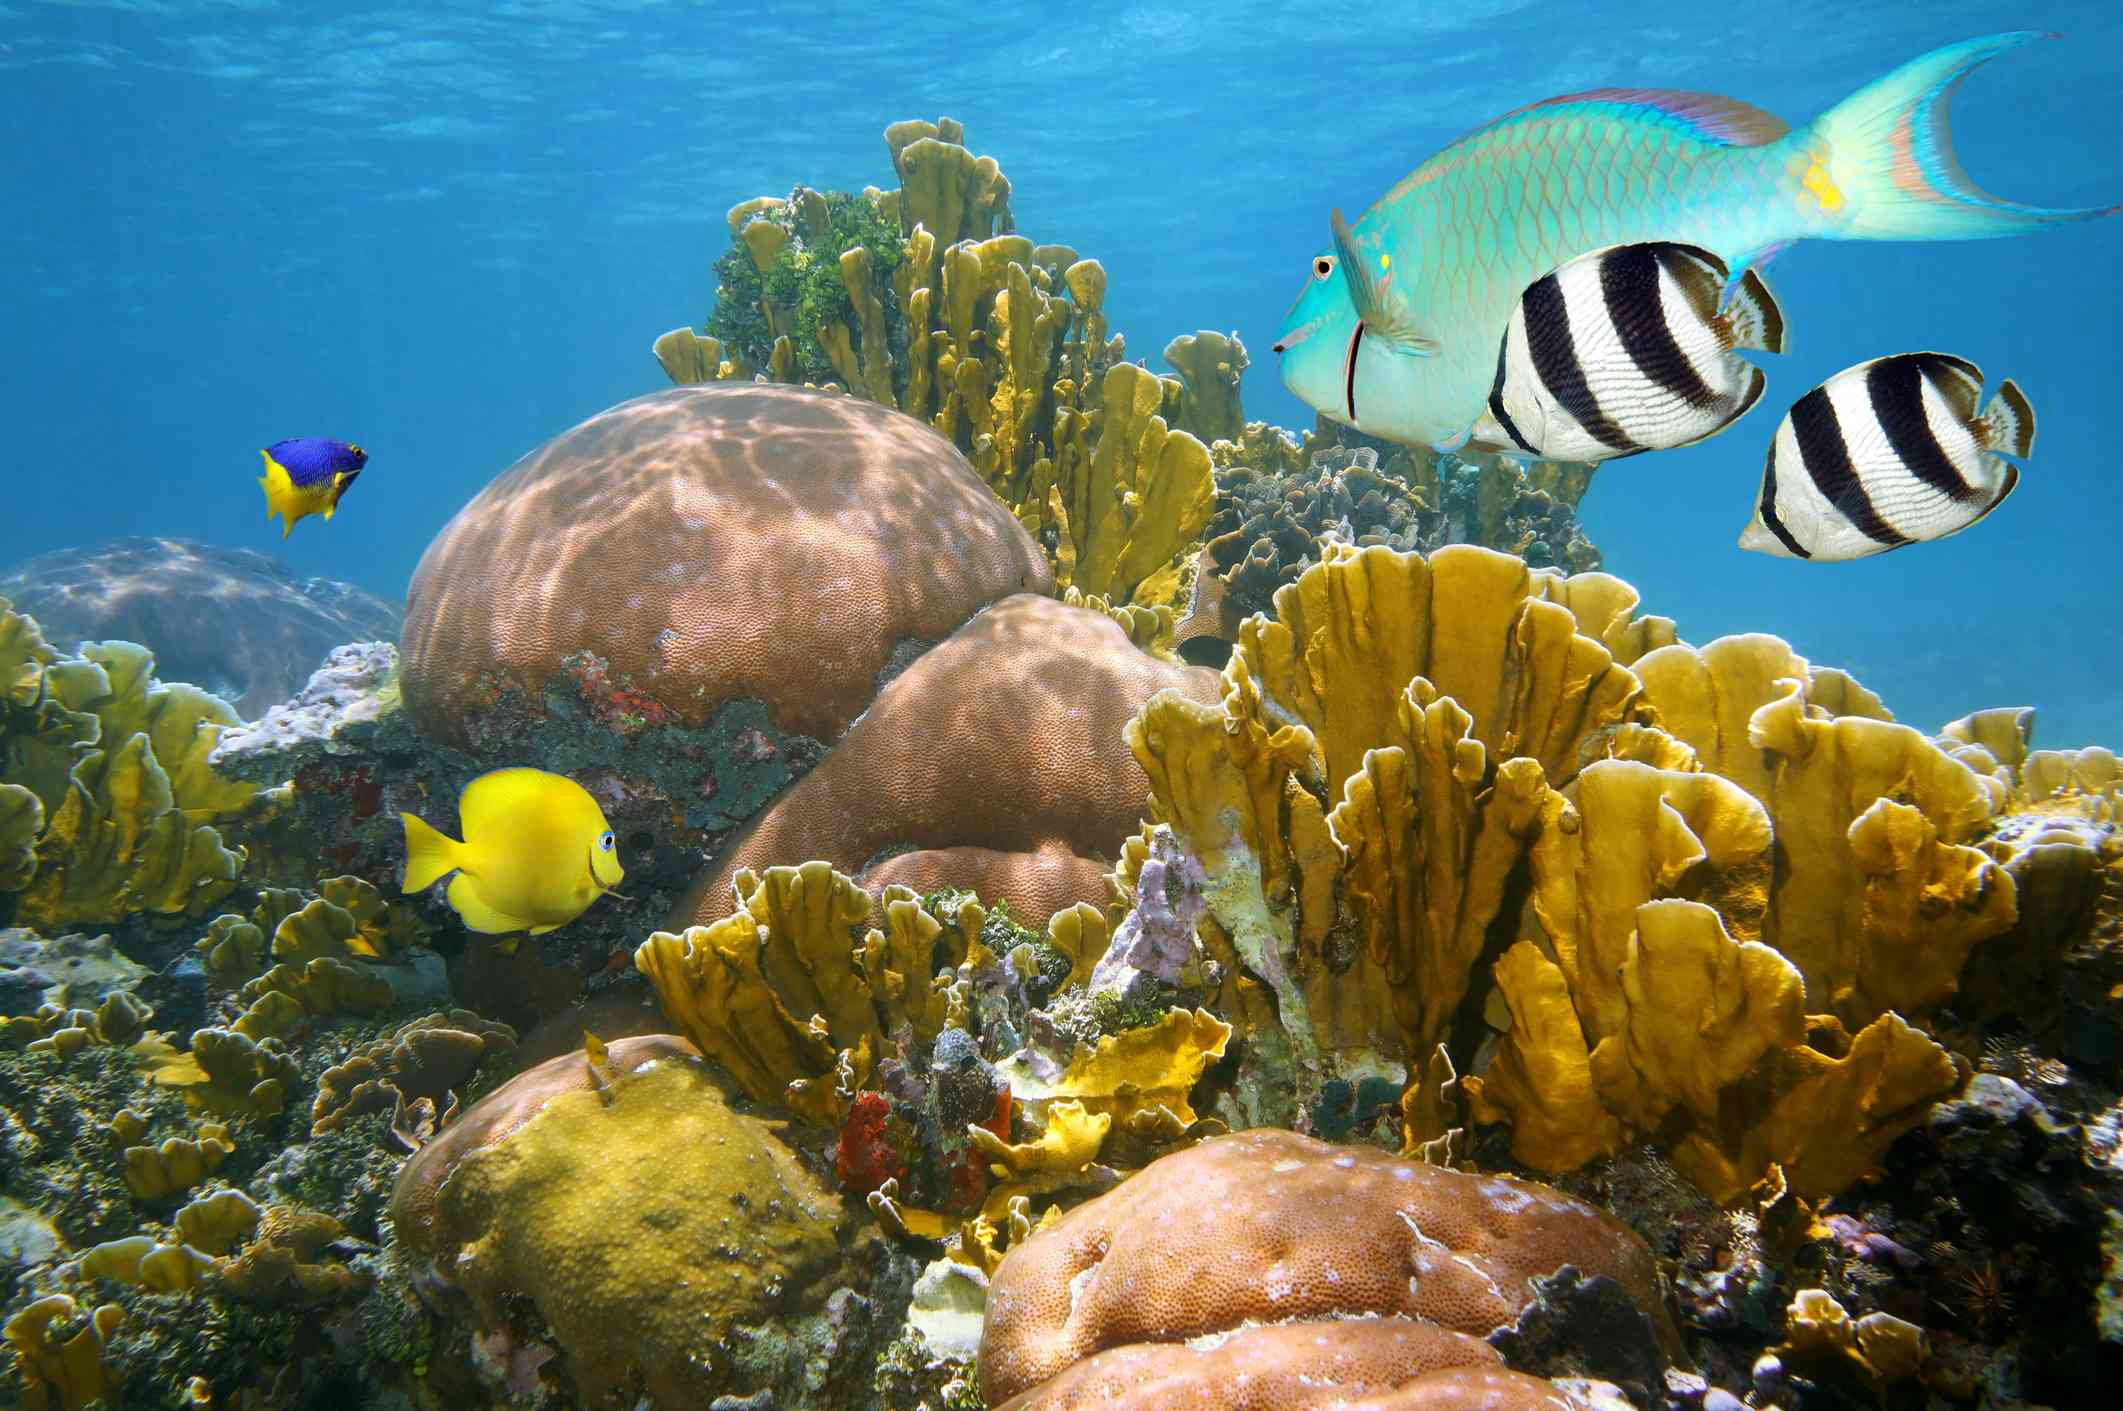 coral reef filled with yellow, black and white striped, and iridescent tropical fish